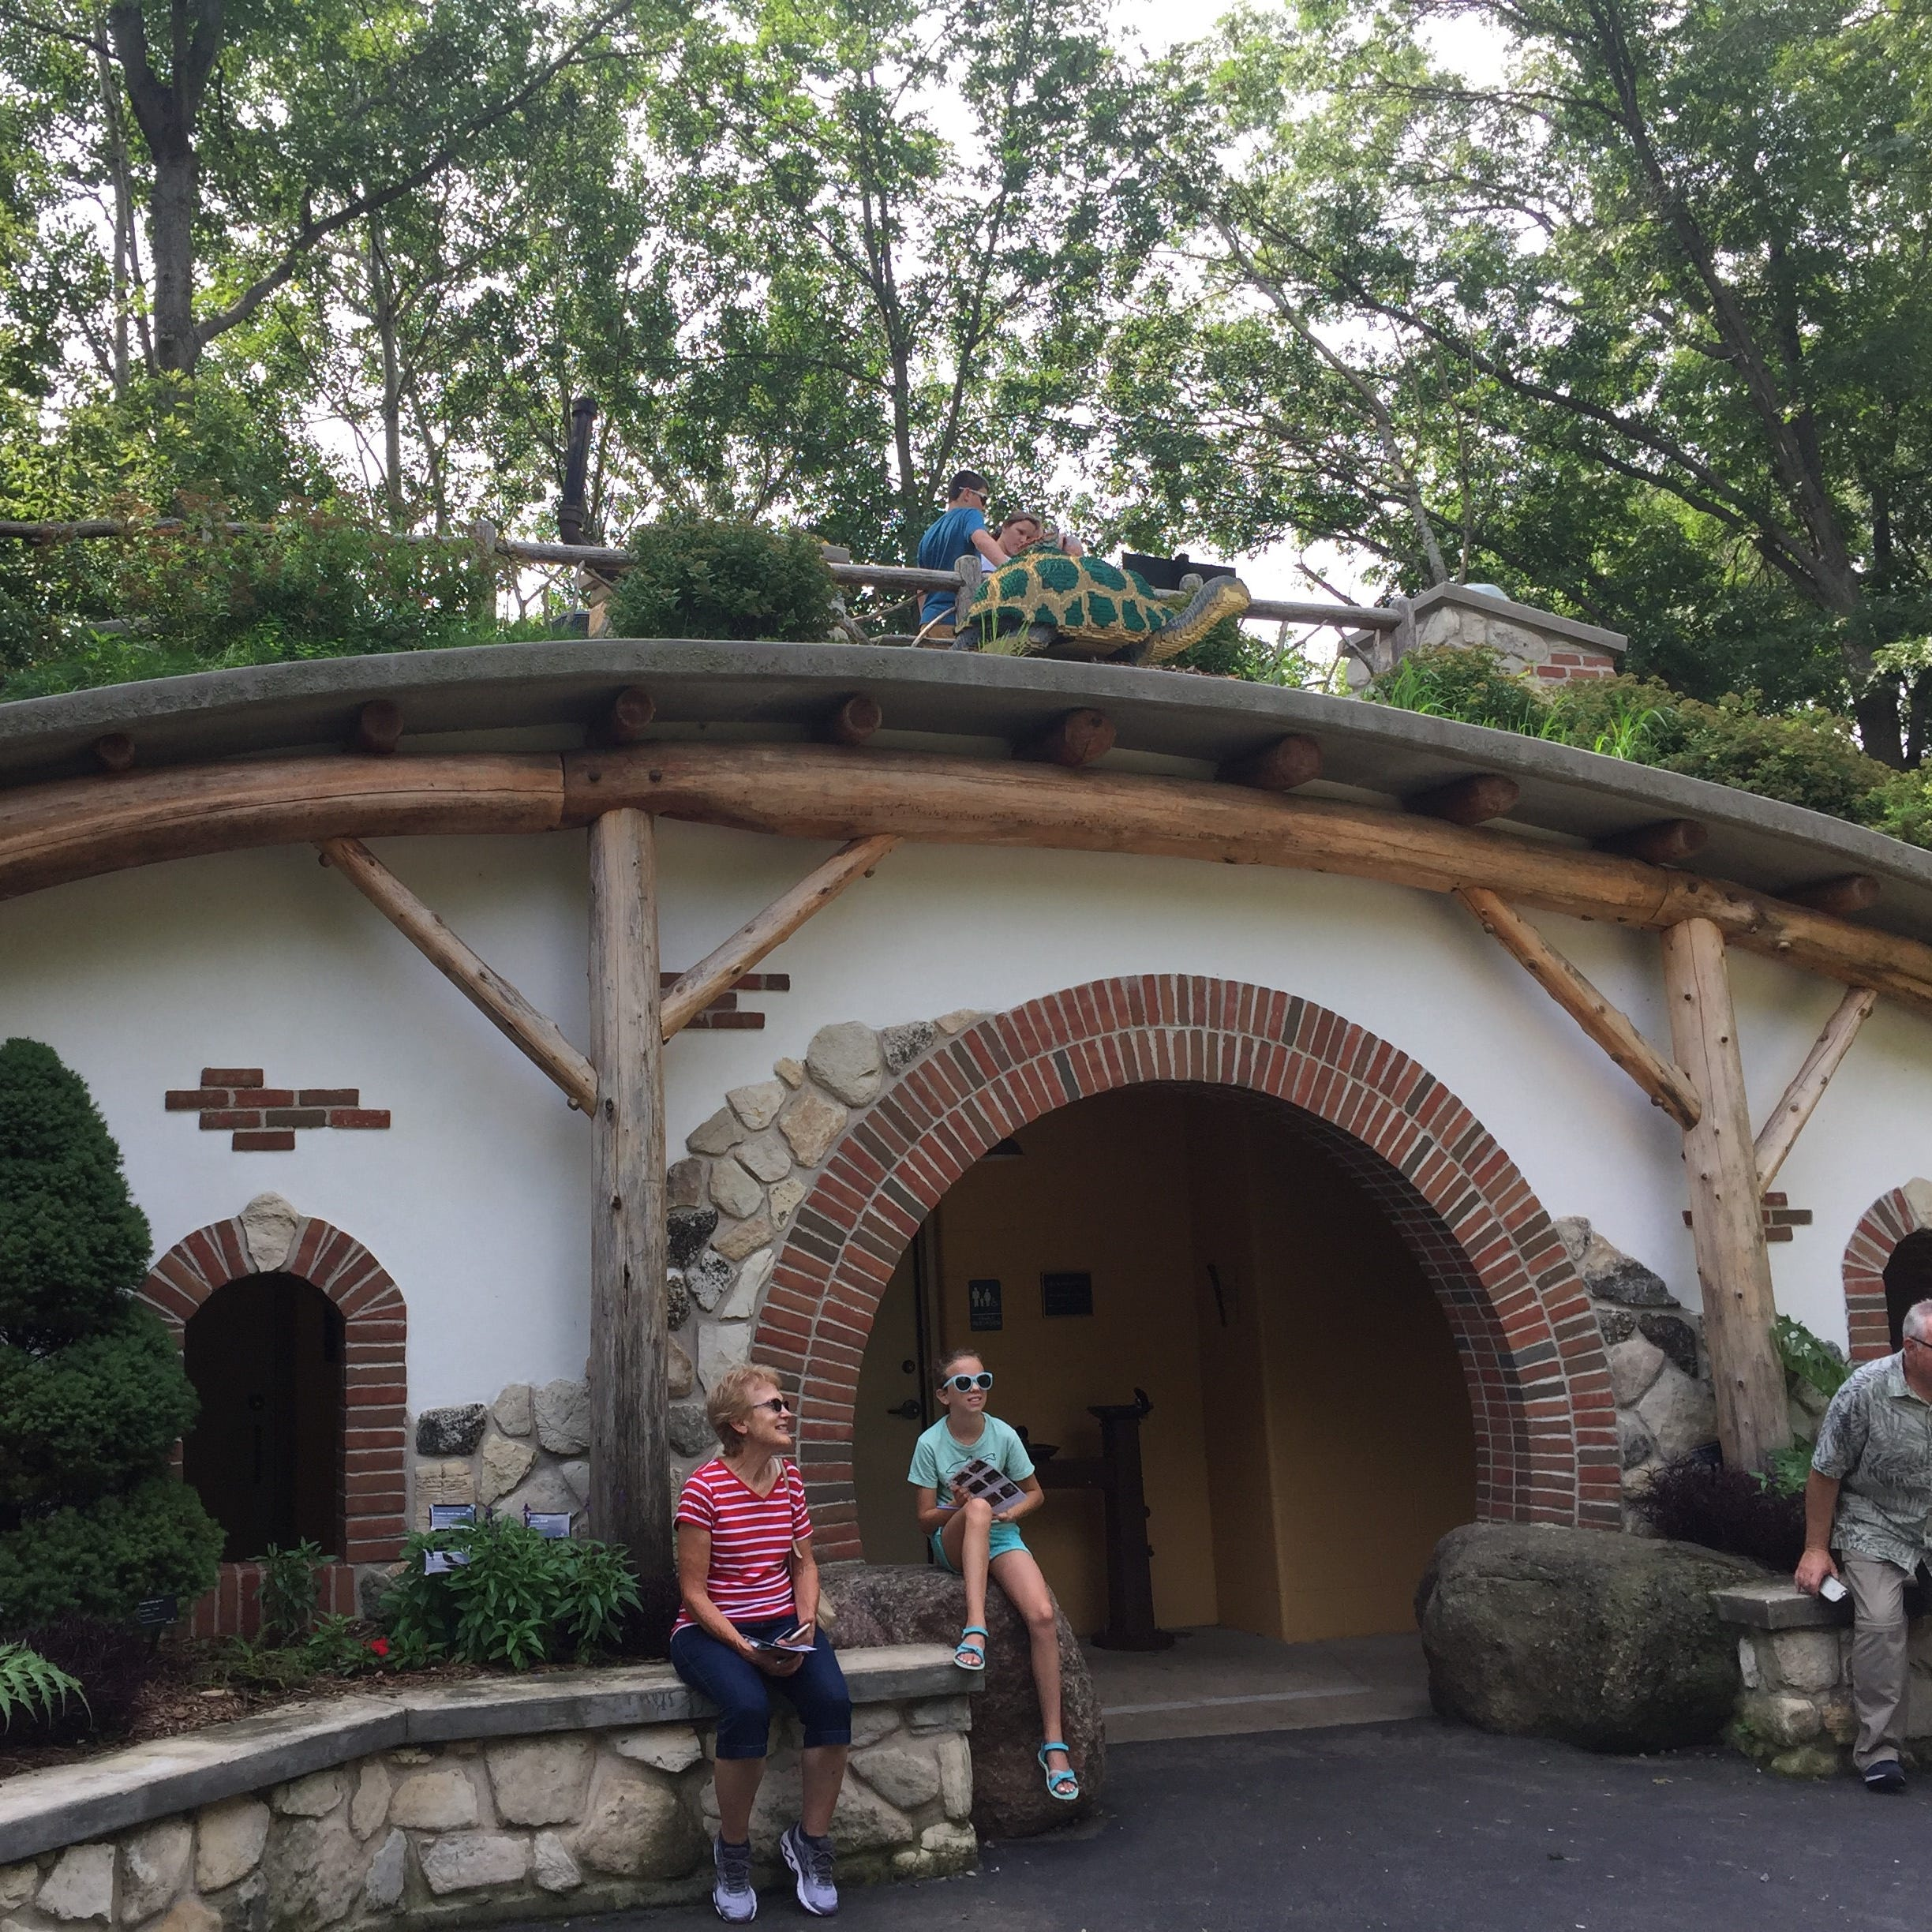 Flush with excitement: Green Bay's Hobbit House in running for America's Best Restroom